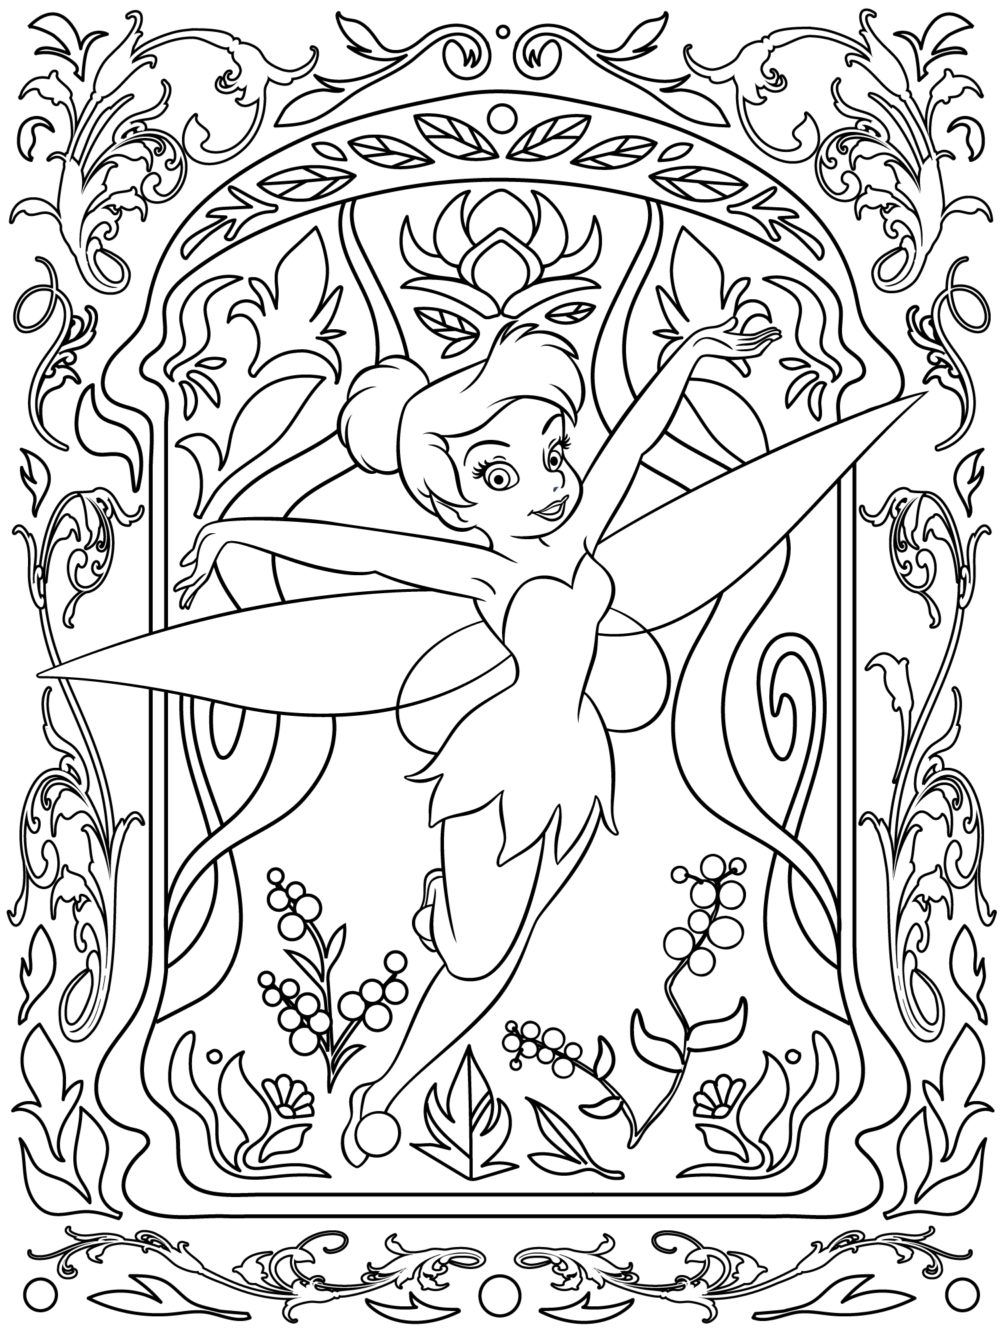 celebrate national coloring book day   disney